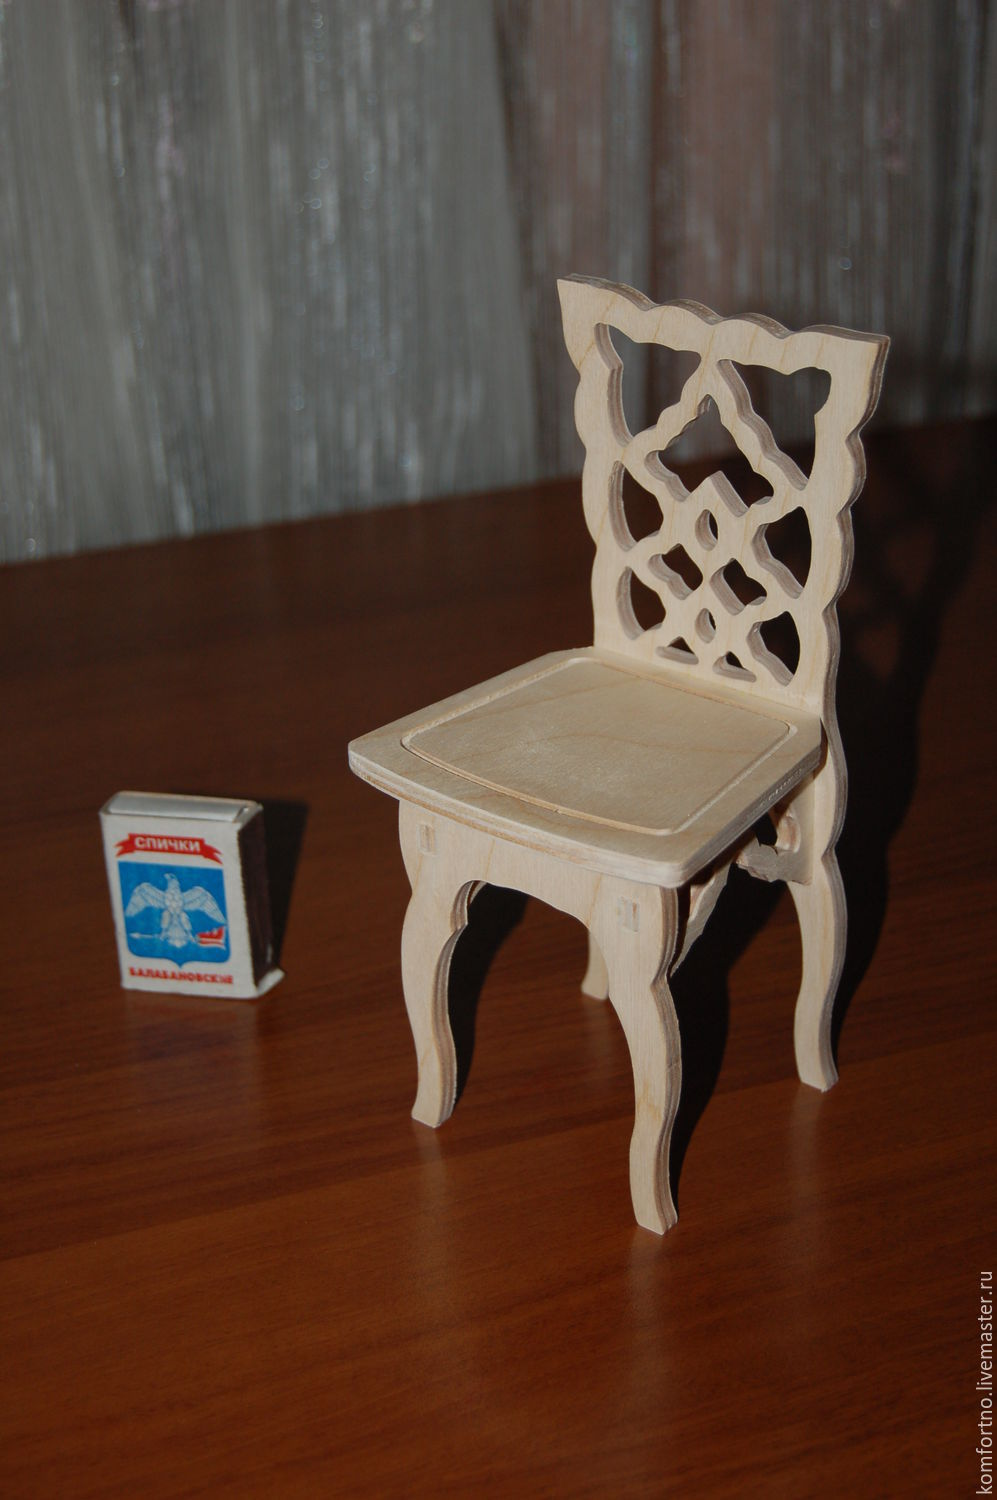 Doll high chair.294.